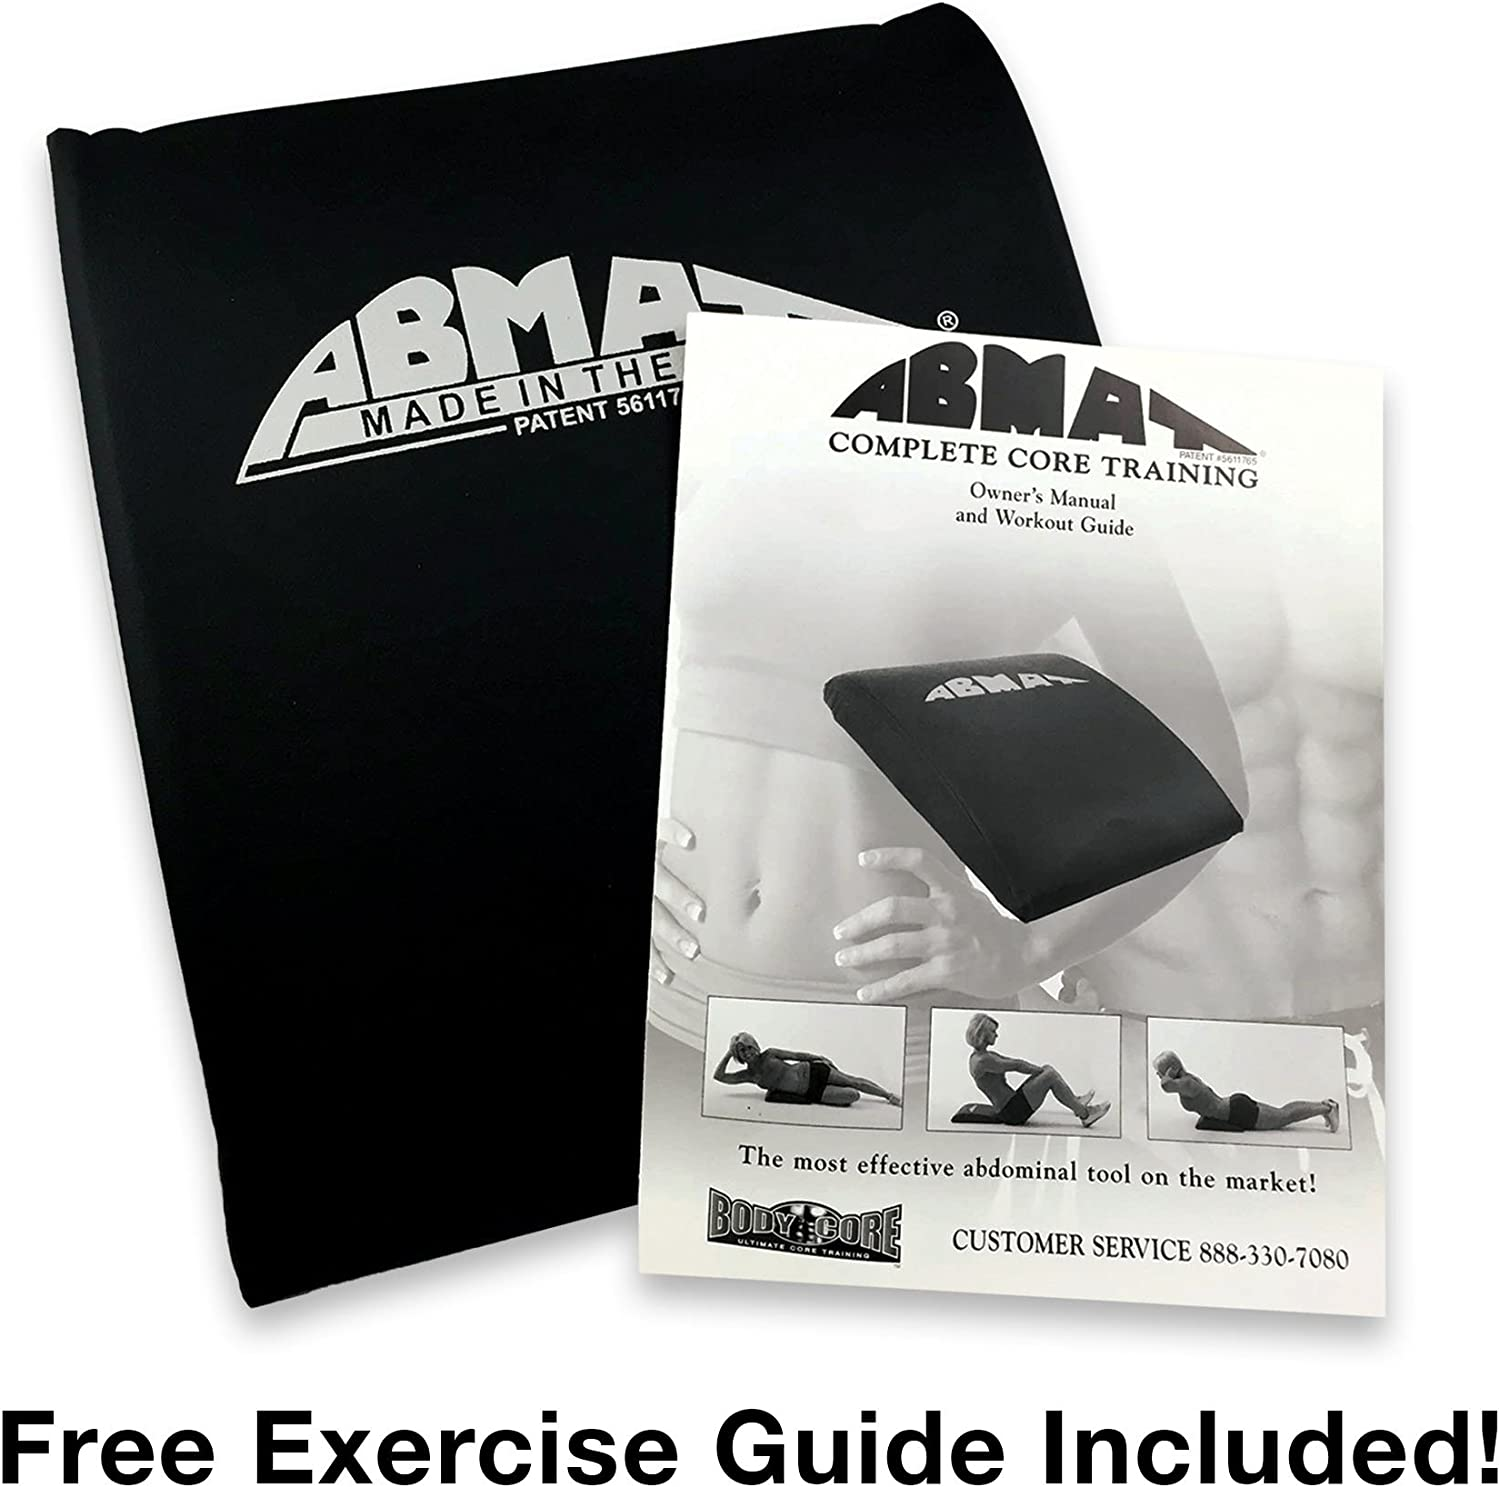 AbMat Silver - The Original Abdominal Trainer - Works Entire Abdominal Muscle Group for Complete AB Workouts : Sports & Outdoors